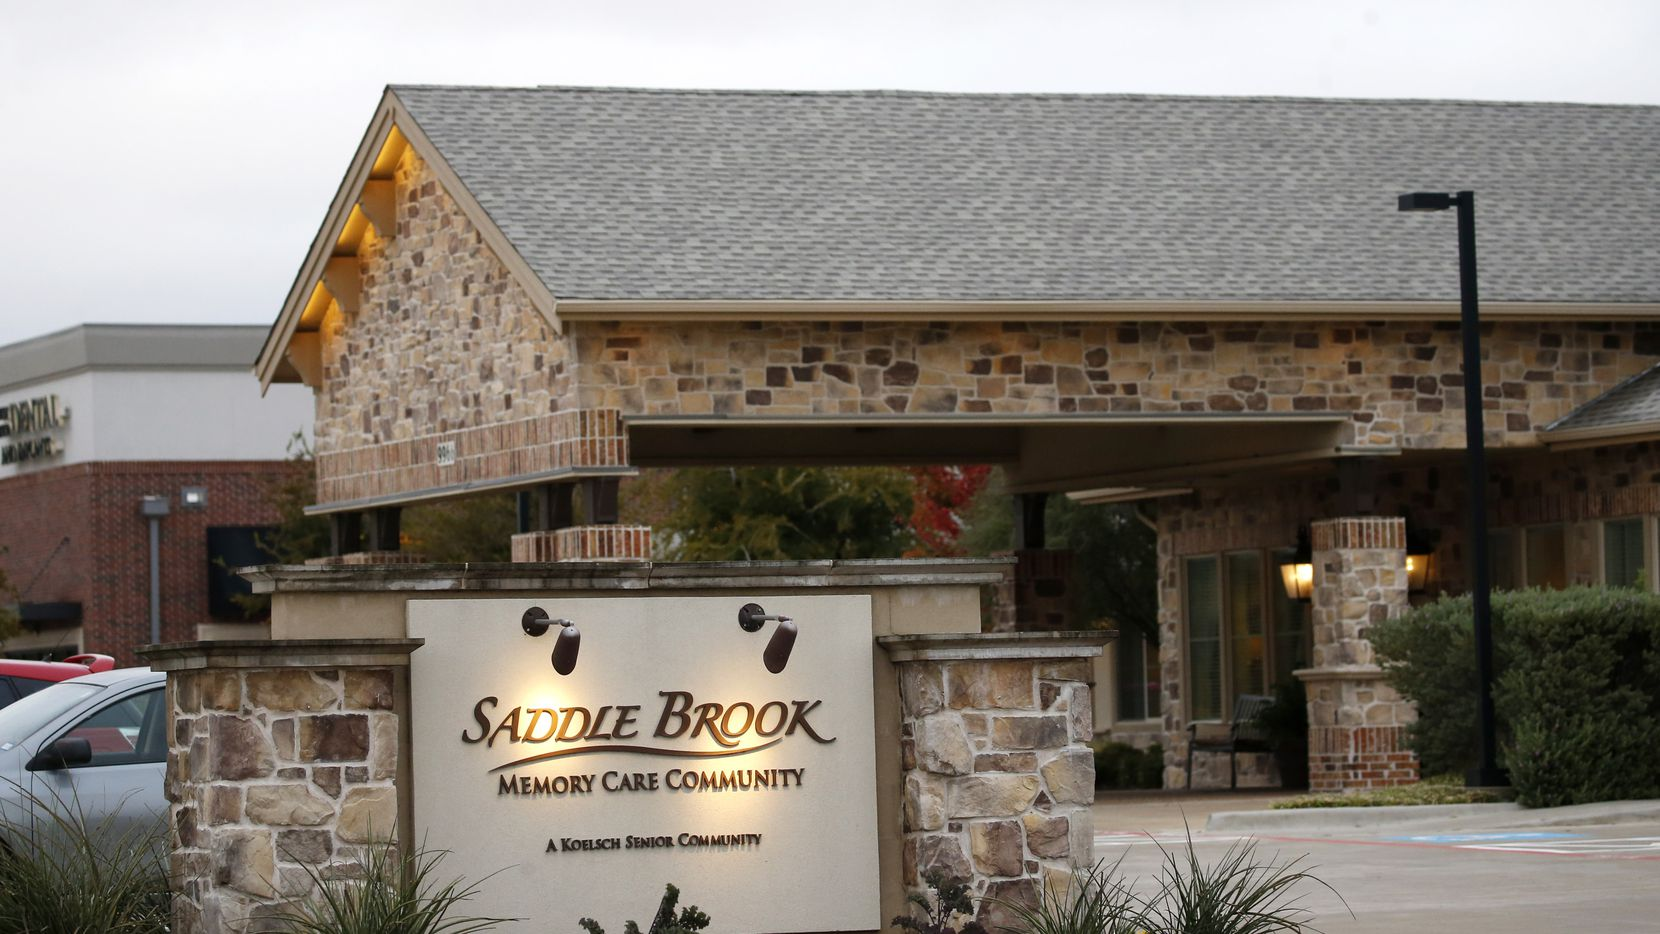 Saddle Brook Memory Care Community on Wednesday, October 28, 2020 in Frisco, Texas. The facility has had at least 6 people die from COVID-19. (Vernon Bryant/The Dallas Morning News)